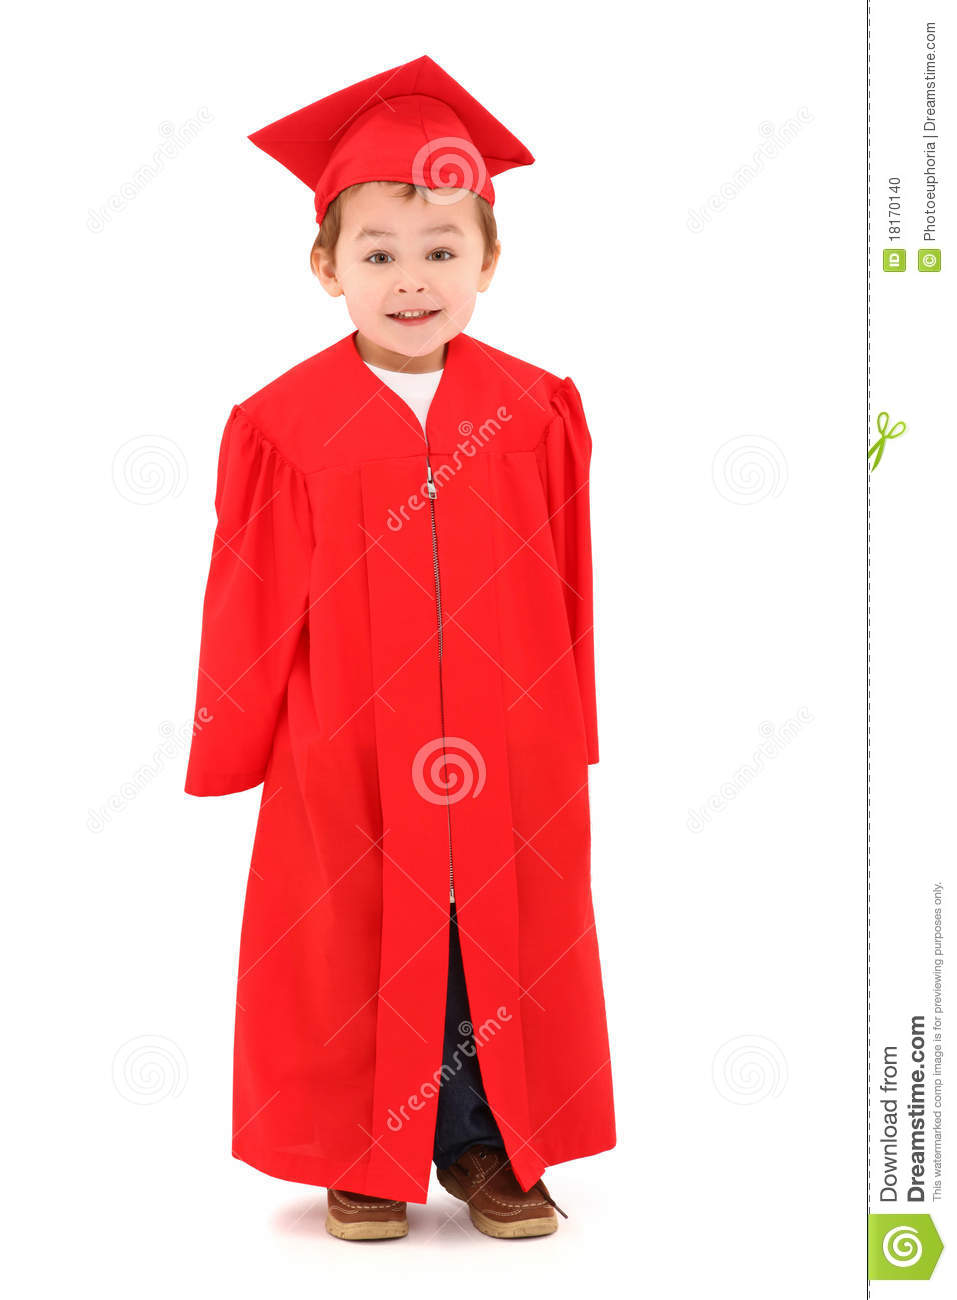 Preschool Graduate In Cap And Gown Stock Photo - Image of daycare ...